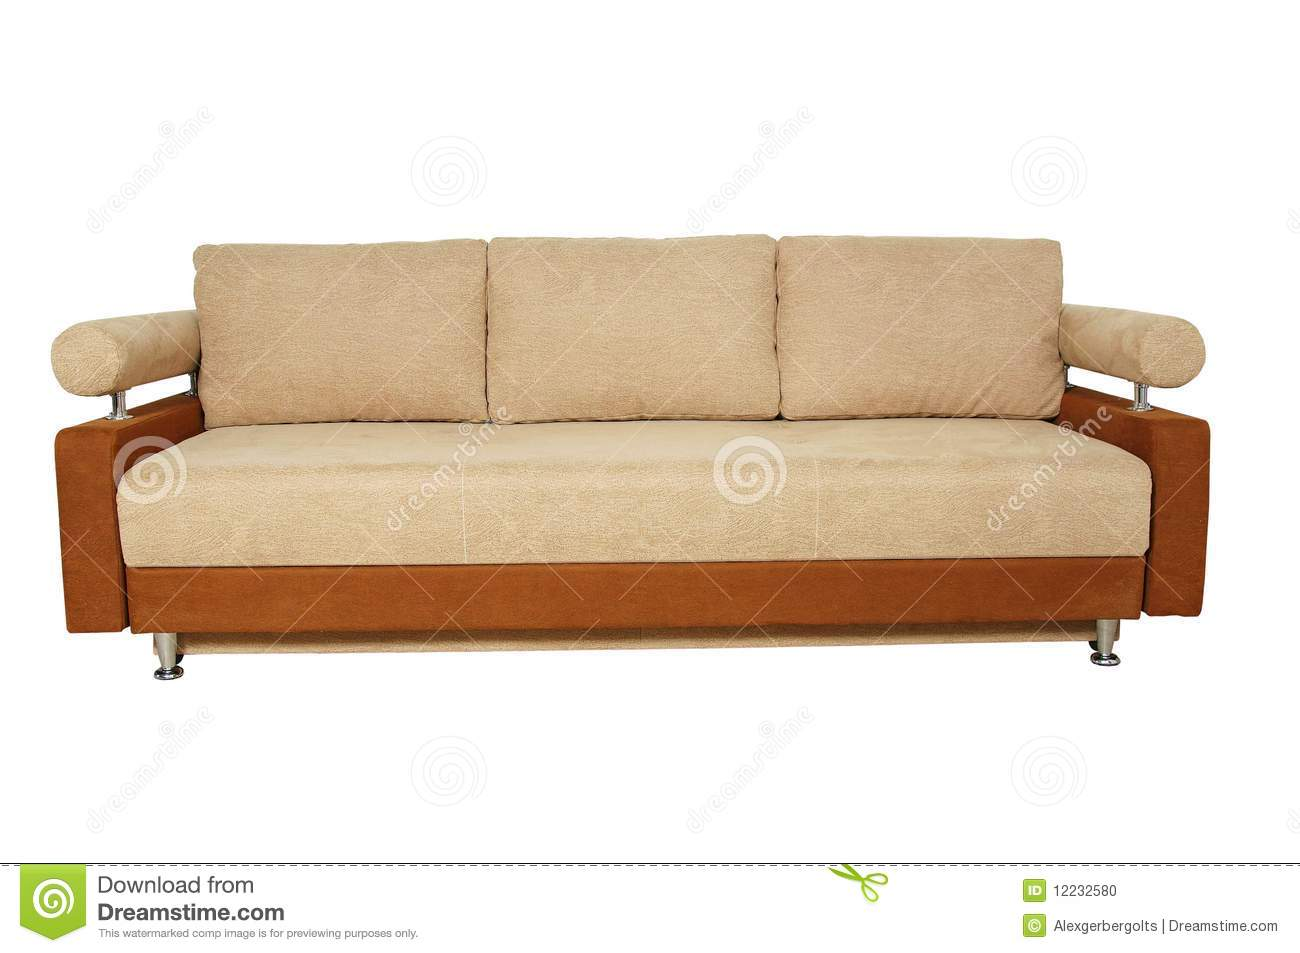 4 seat leather sofa images